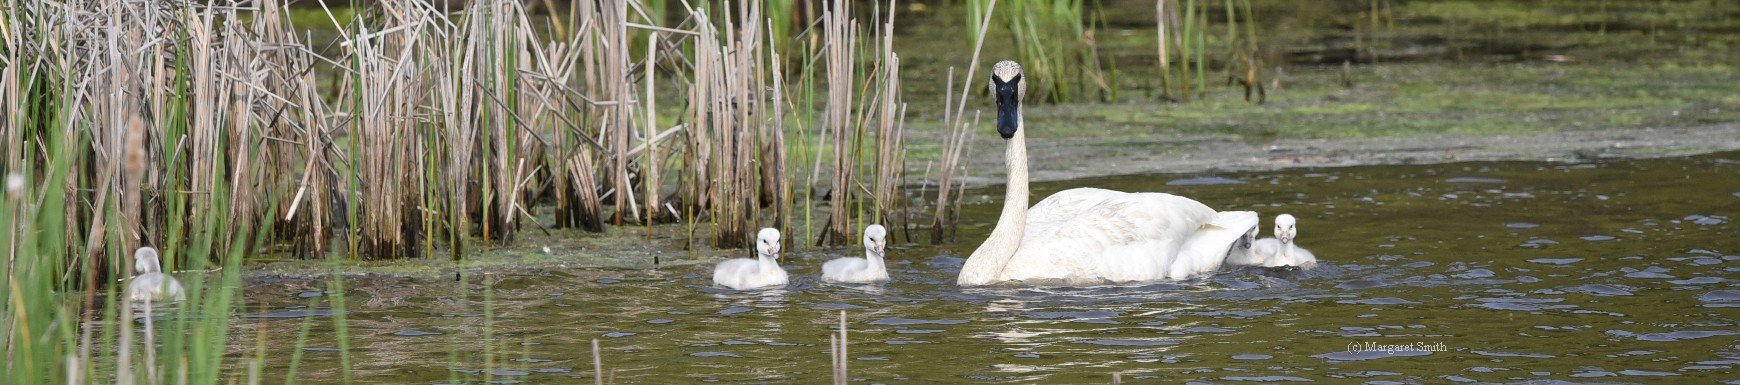 Your tax deductible donation shows your love for swan conservation